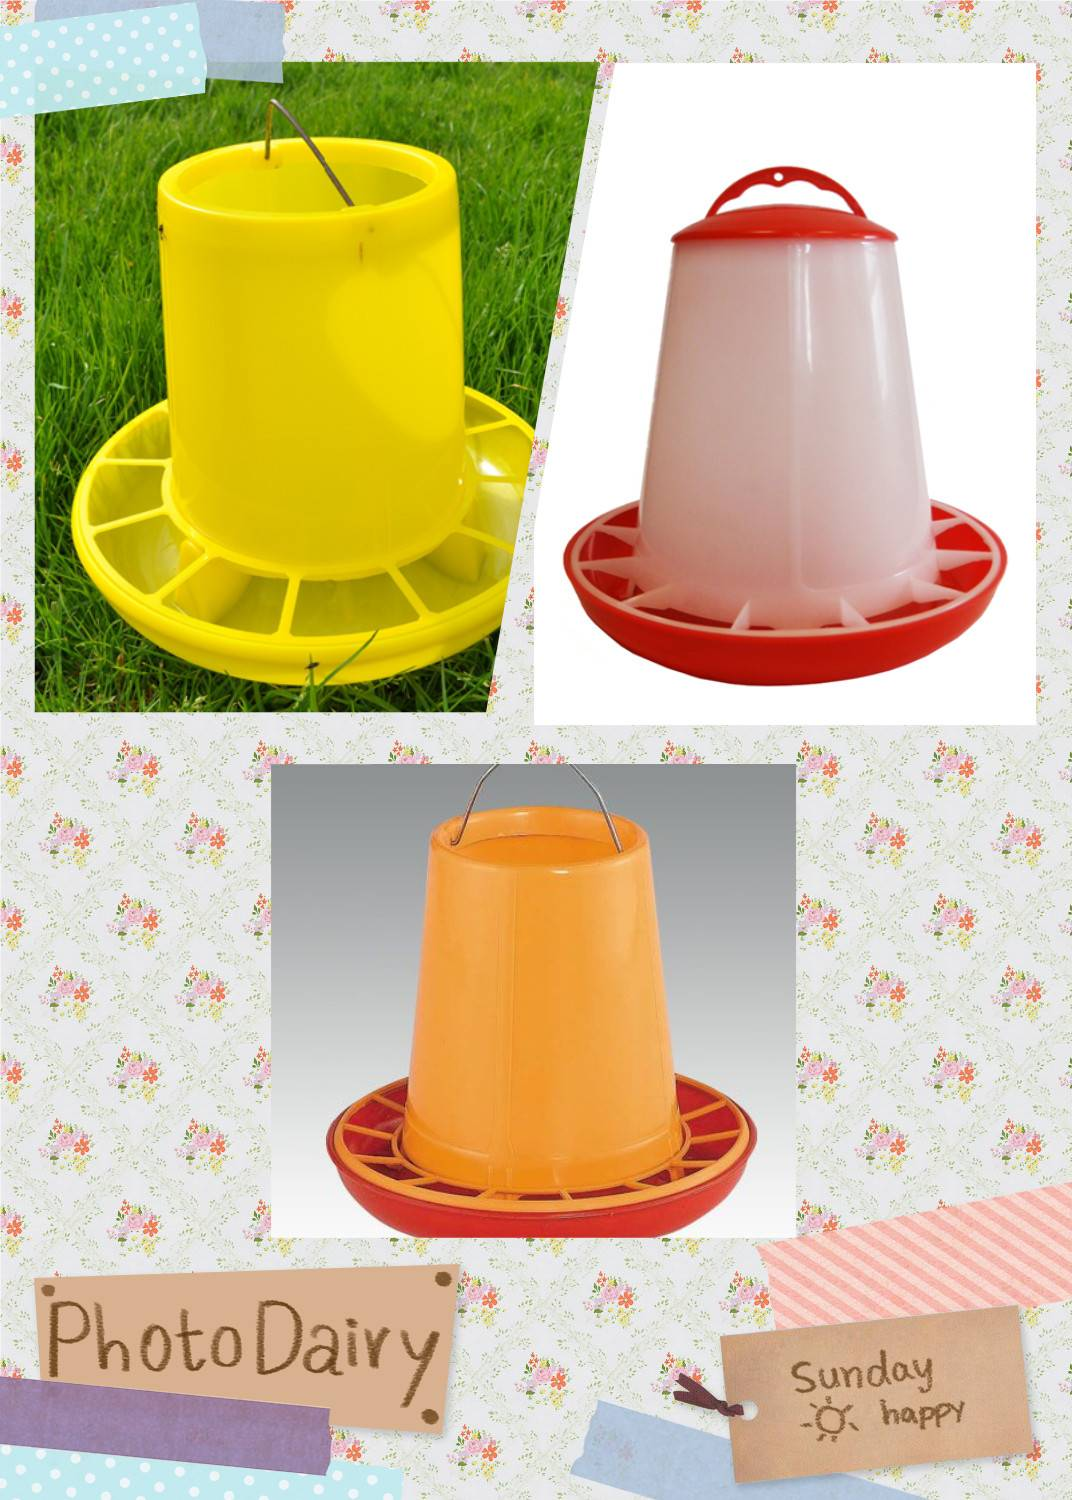 4kg best selling and high quality plastic poultry feeders for chicken